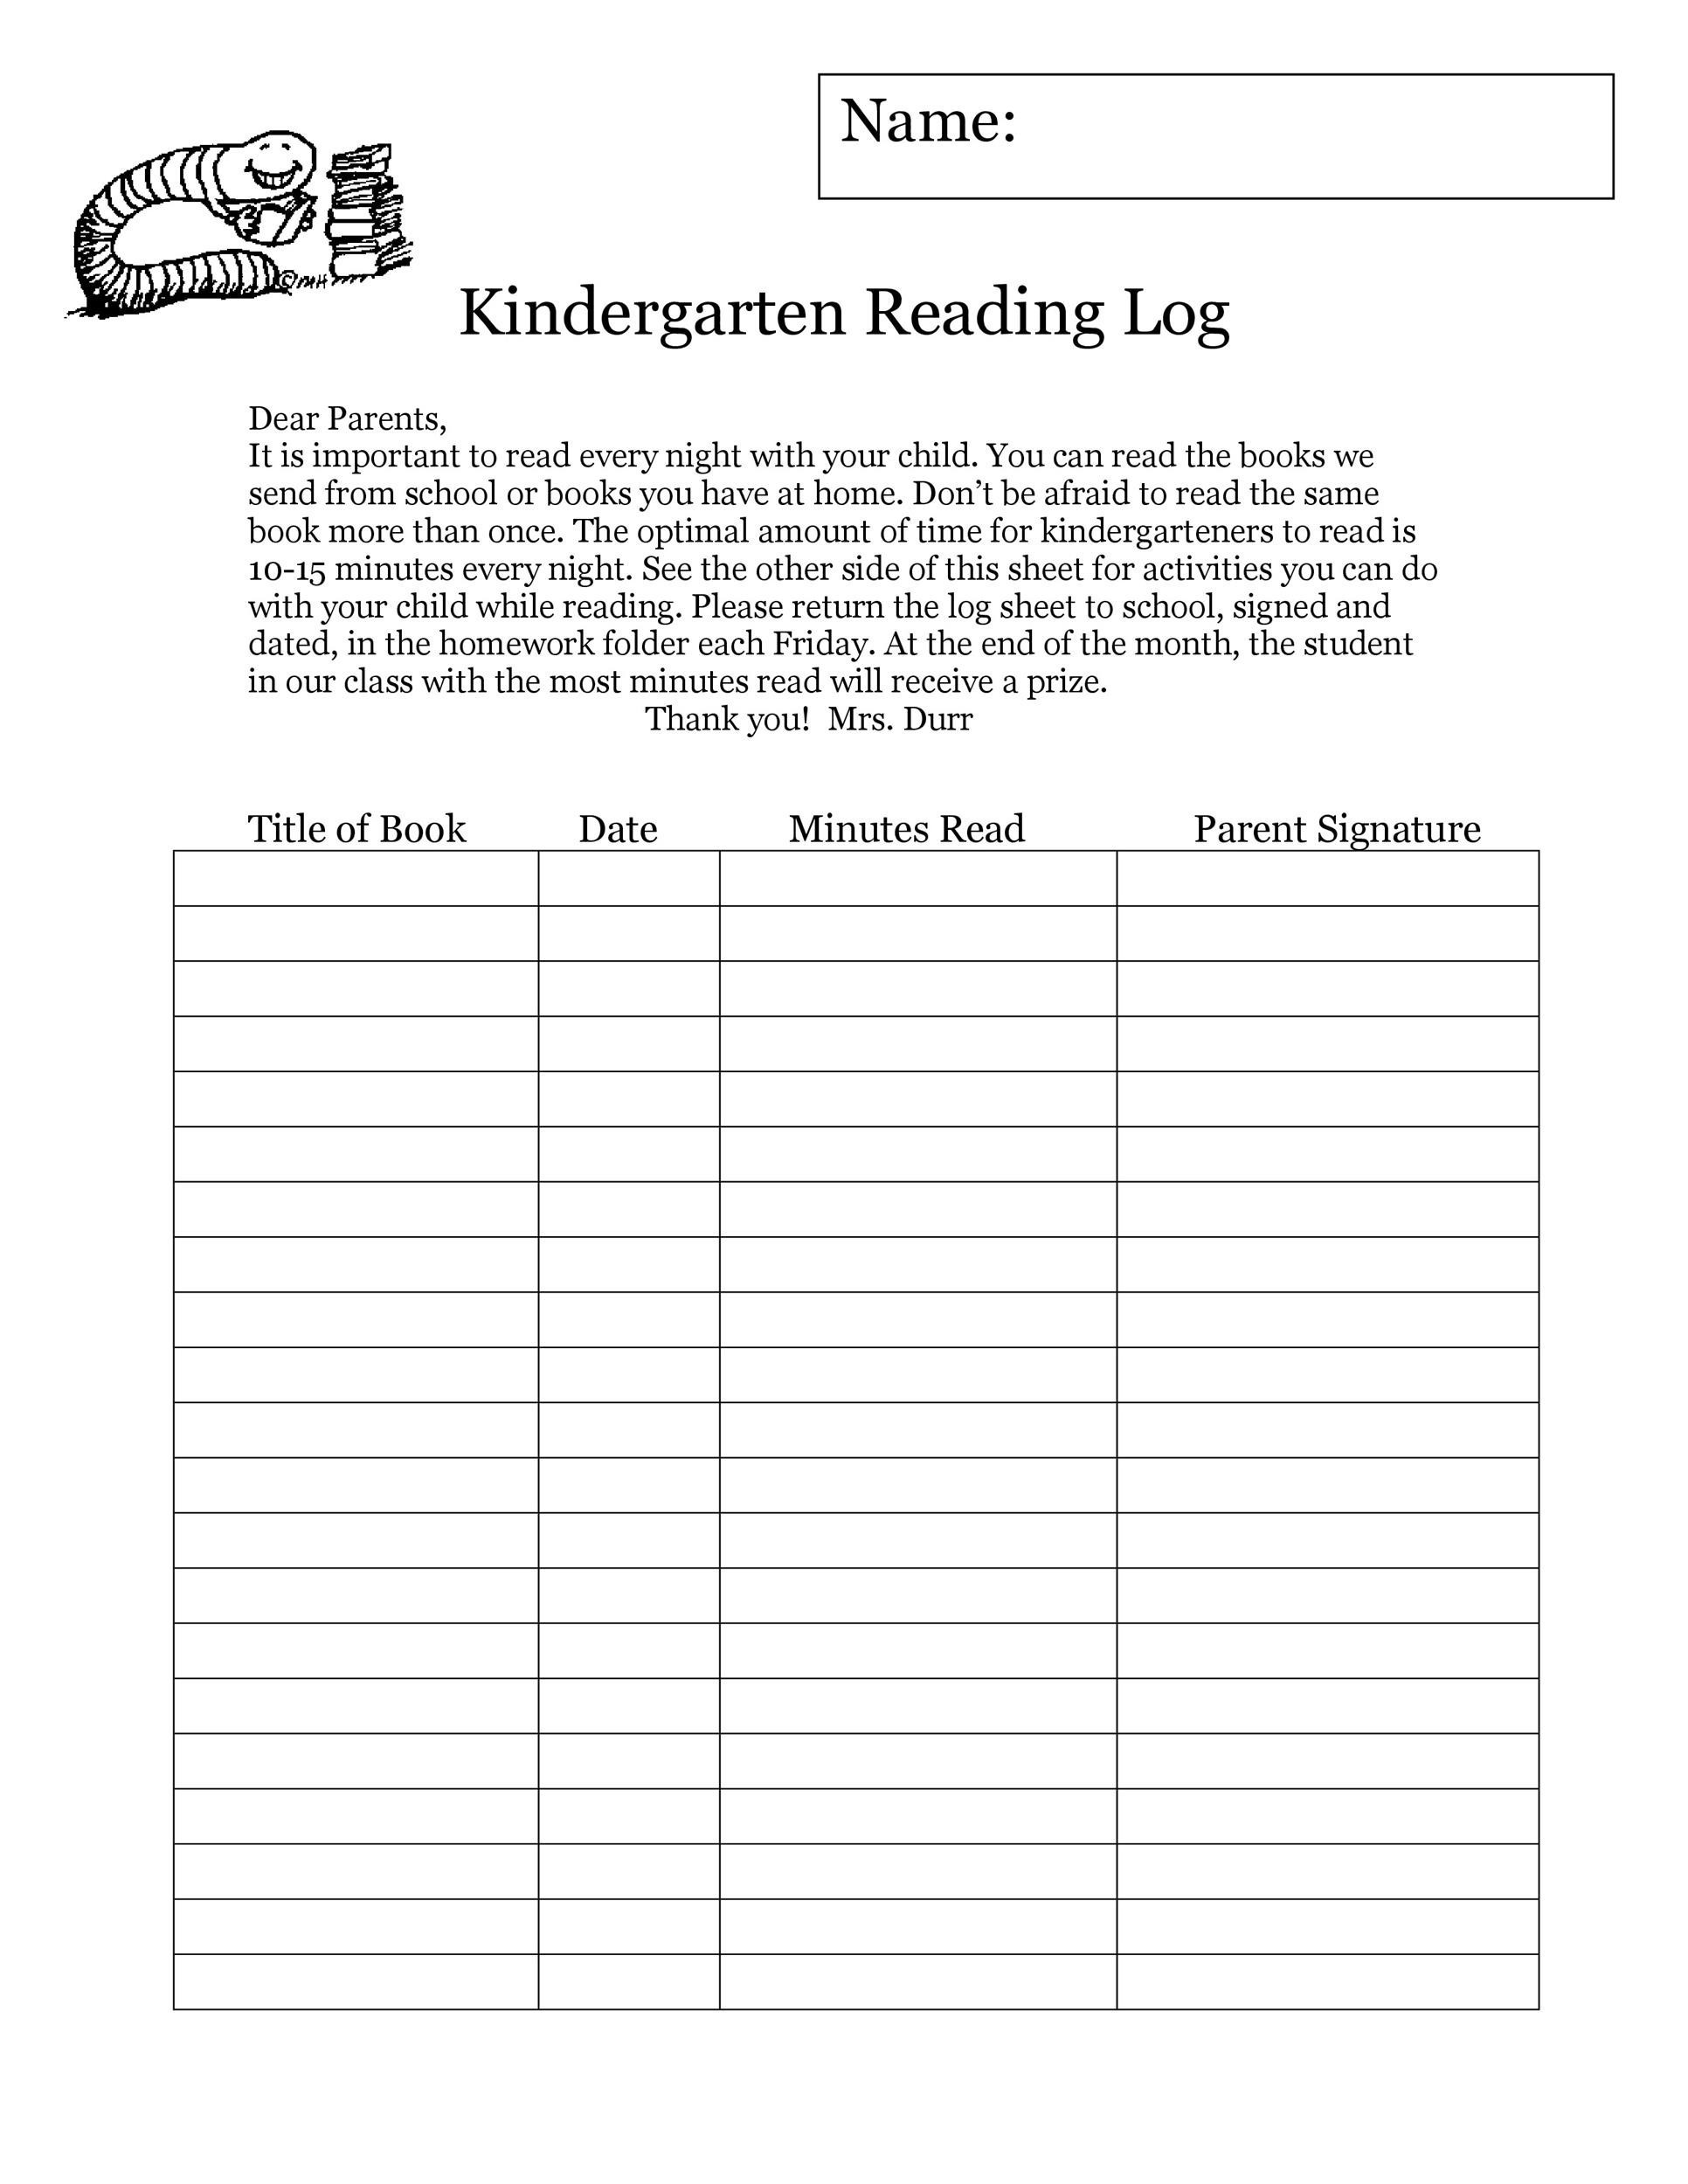 photo regarding Printable Reading Logs With Parent Signature titled 47 Printable Looking at Log Templates for Youngsters, Center College or university